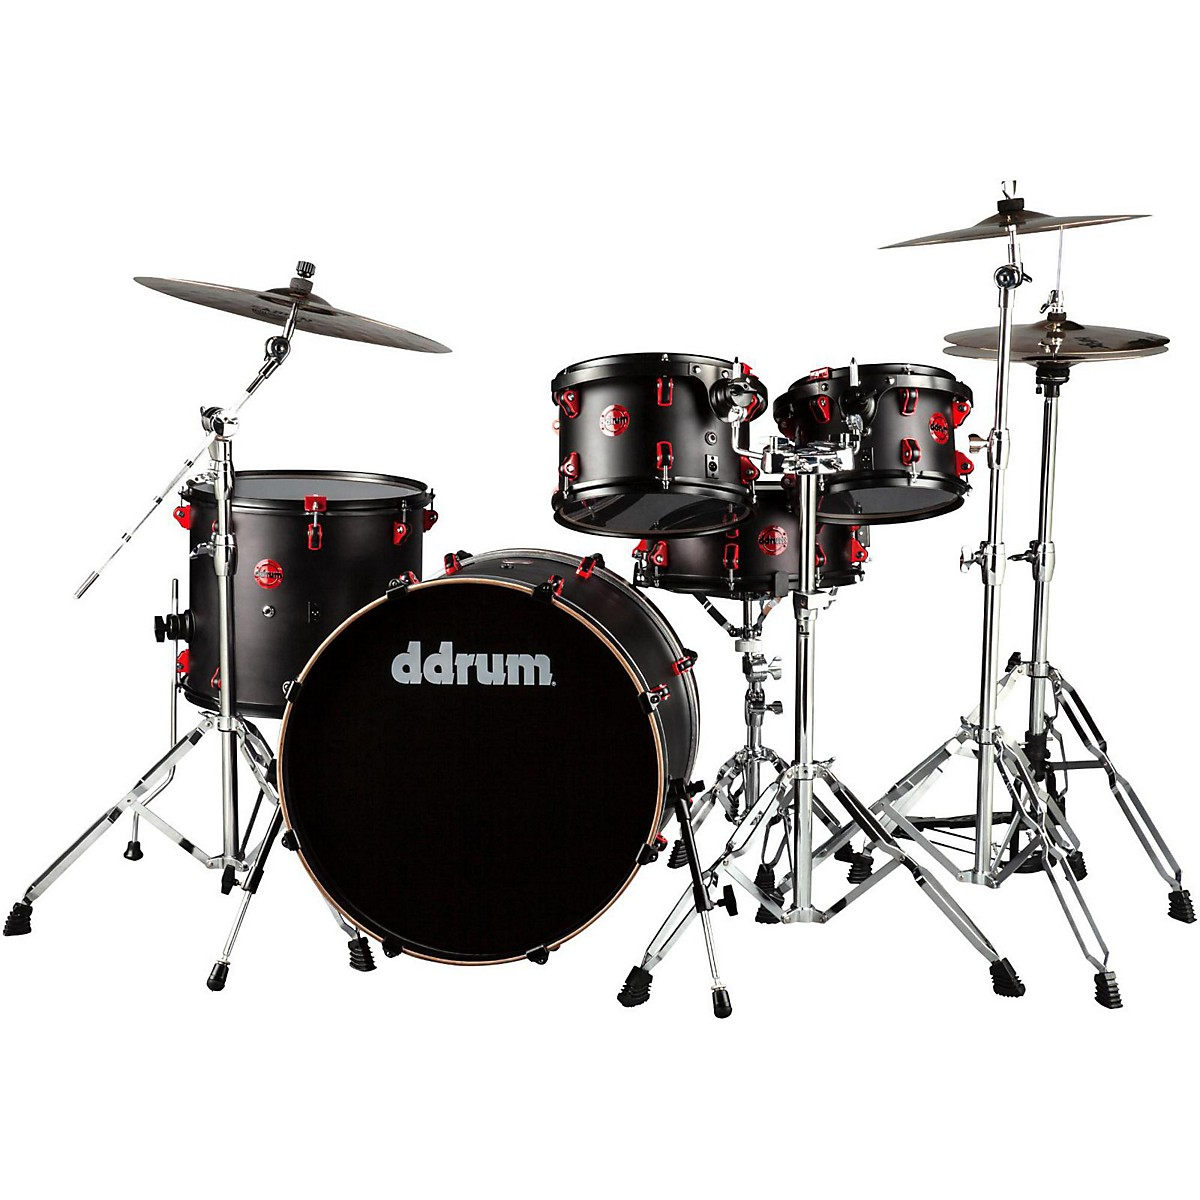 ddrum Hybrid 5-Piece Player Shell Pack